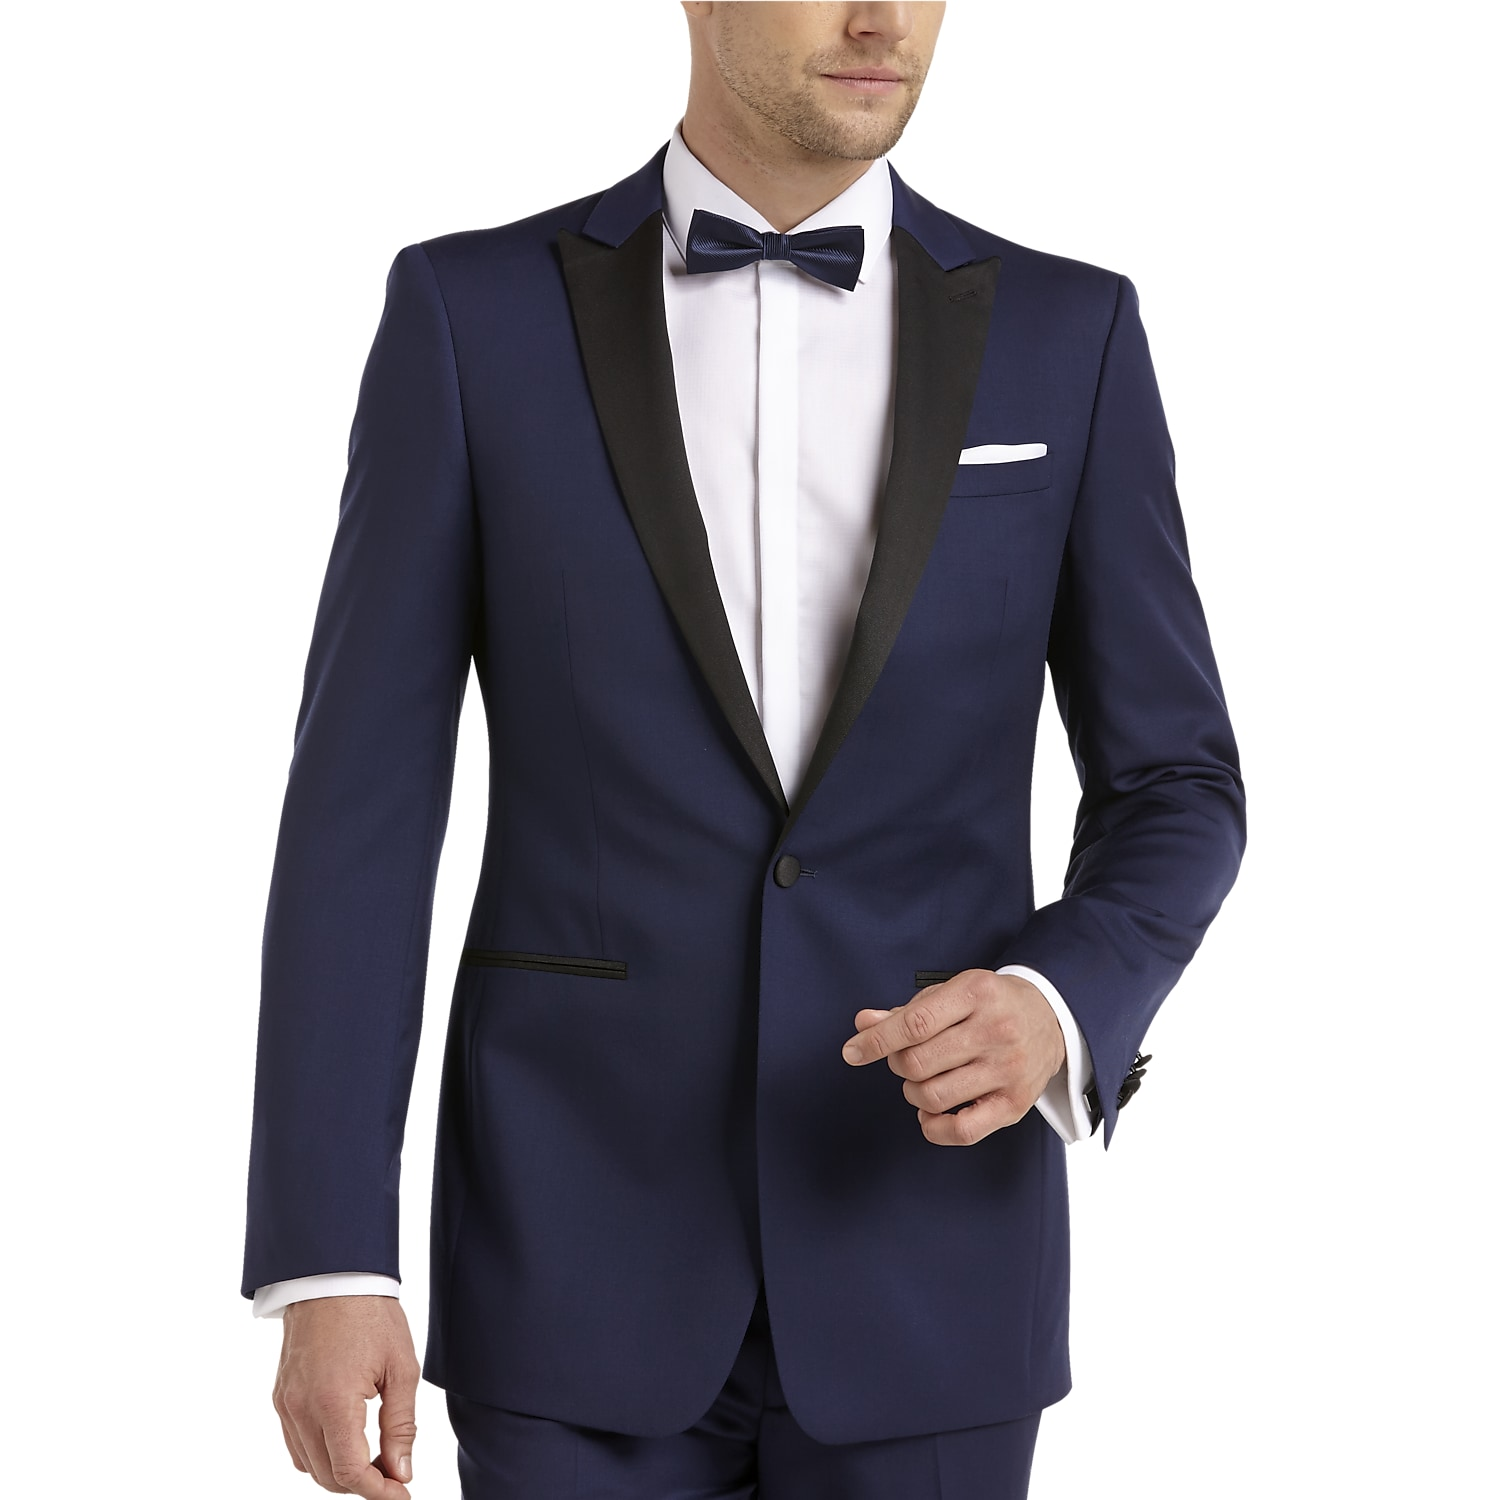 4d225ab9cf1a4 Mens Tuxedos   Formalwear, Clearance - Calvin Klein Blue Slim Fit Tuxedo -  Men s Wearhouse